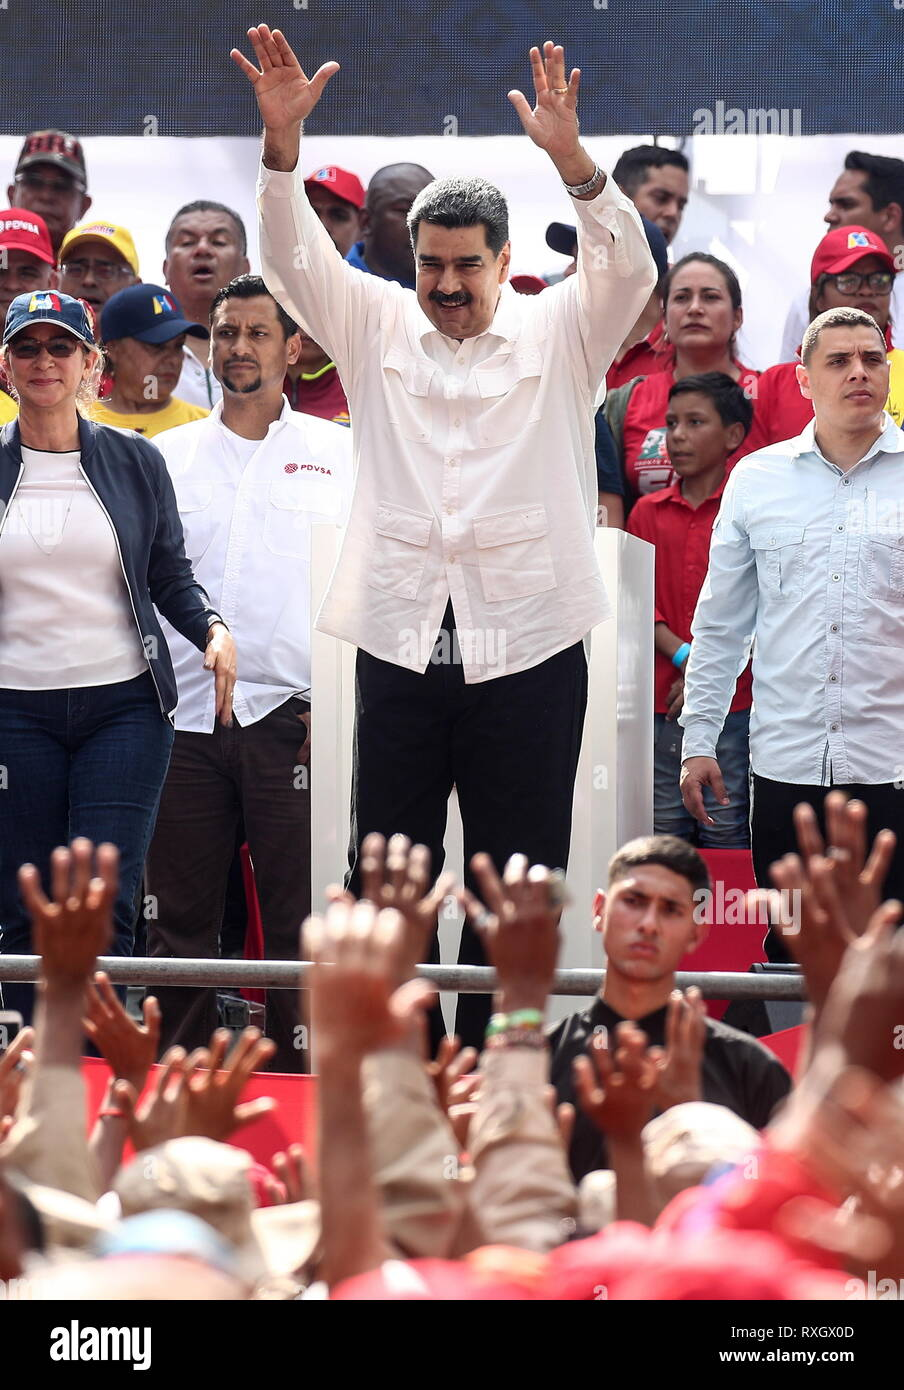 Caracas, Venezuela. 09th Mar, 2019. CARACAS, VENEZUELA - MARCH 10, 2019: Venezuela's President Nicolas Maduro (C) and his wife Cilia Flores (L) during a rally marking Anti-imperialism Day by the Miraflores Palace. Valery Sharifulin/TASS Credit: ITAR-TASS News Agency/Alamy Live News - Stock Image